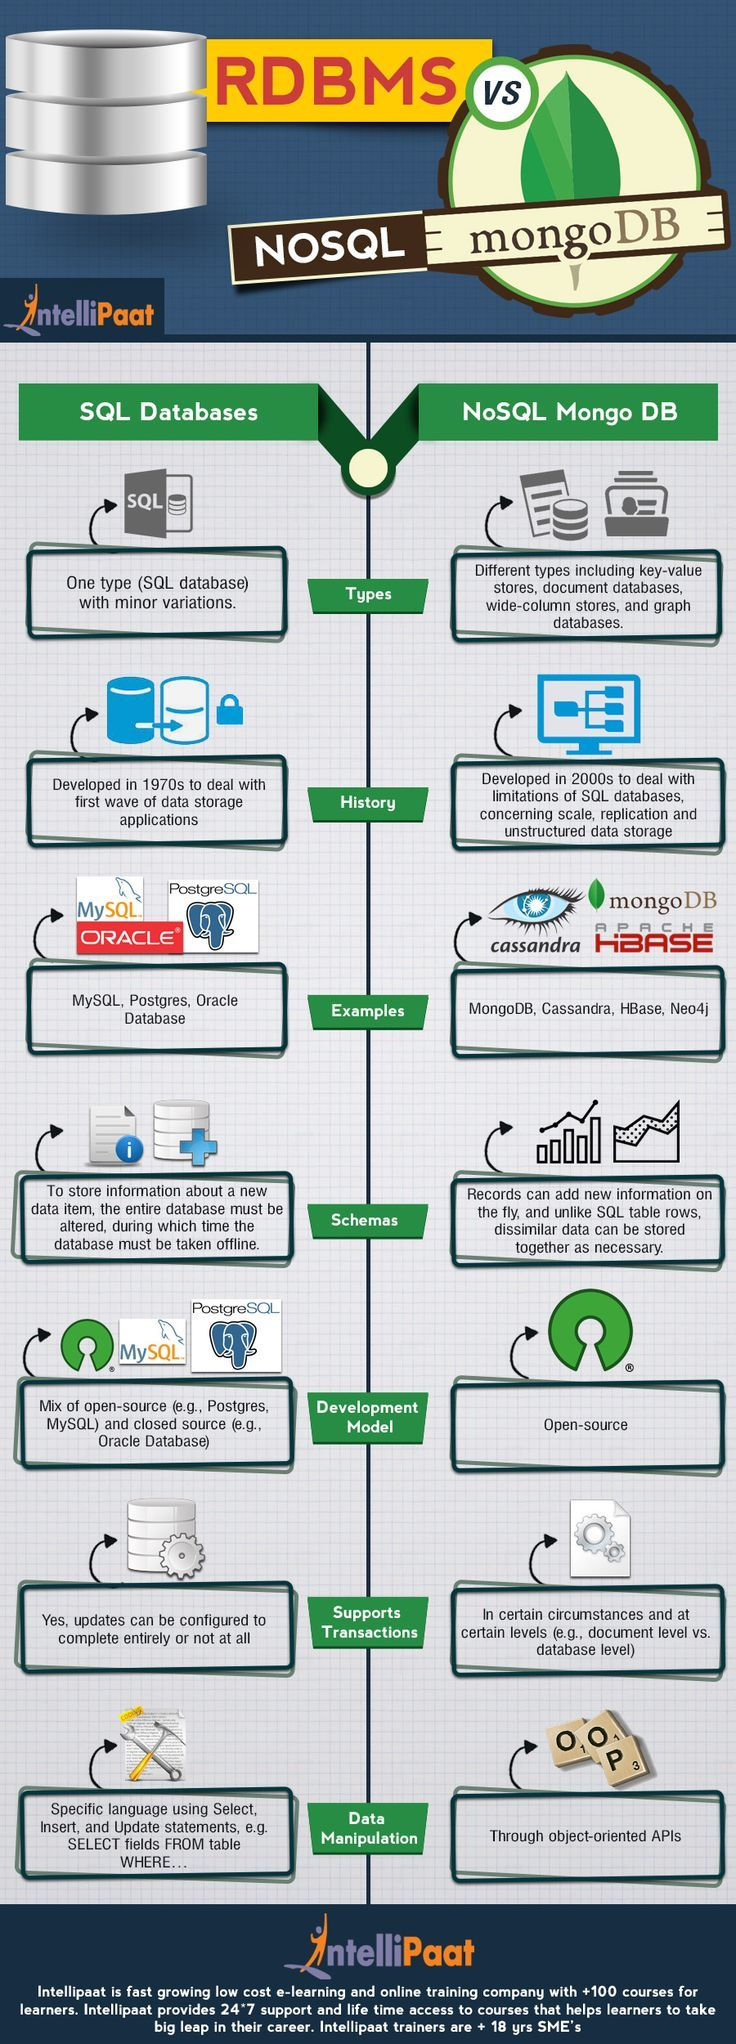 RDBMS vs Nosql - A Comparison between Sql & Nosql Mongodb Database. Nosql. MongoDB. Infographic. Tailor-made IT Systems. Opus Online.